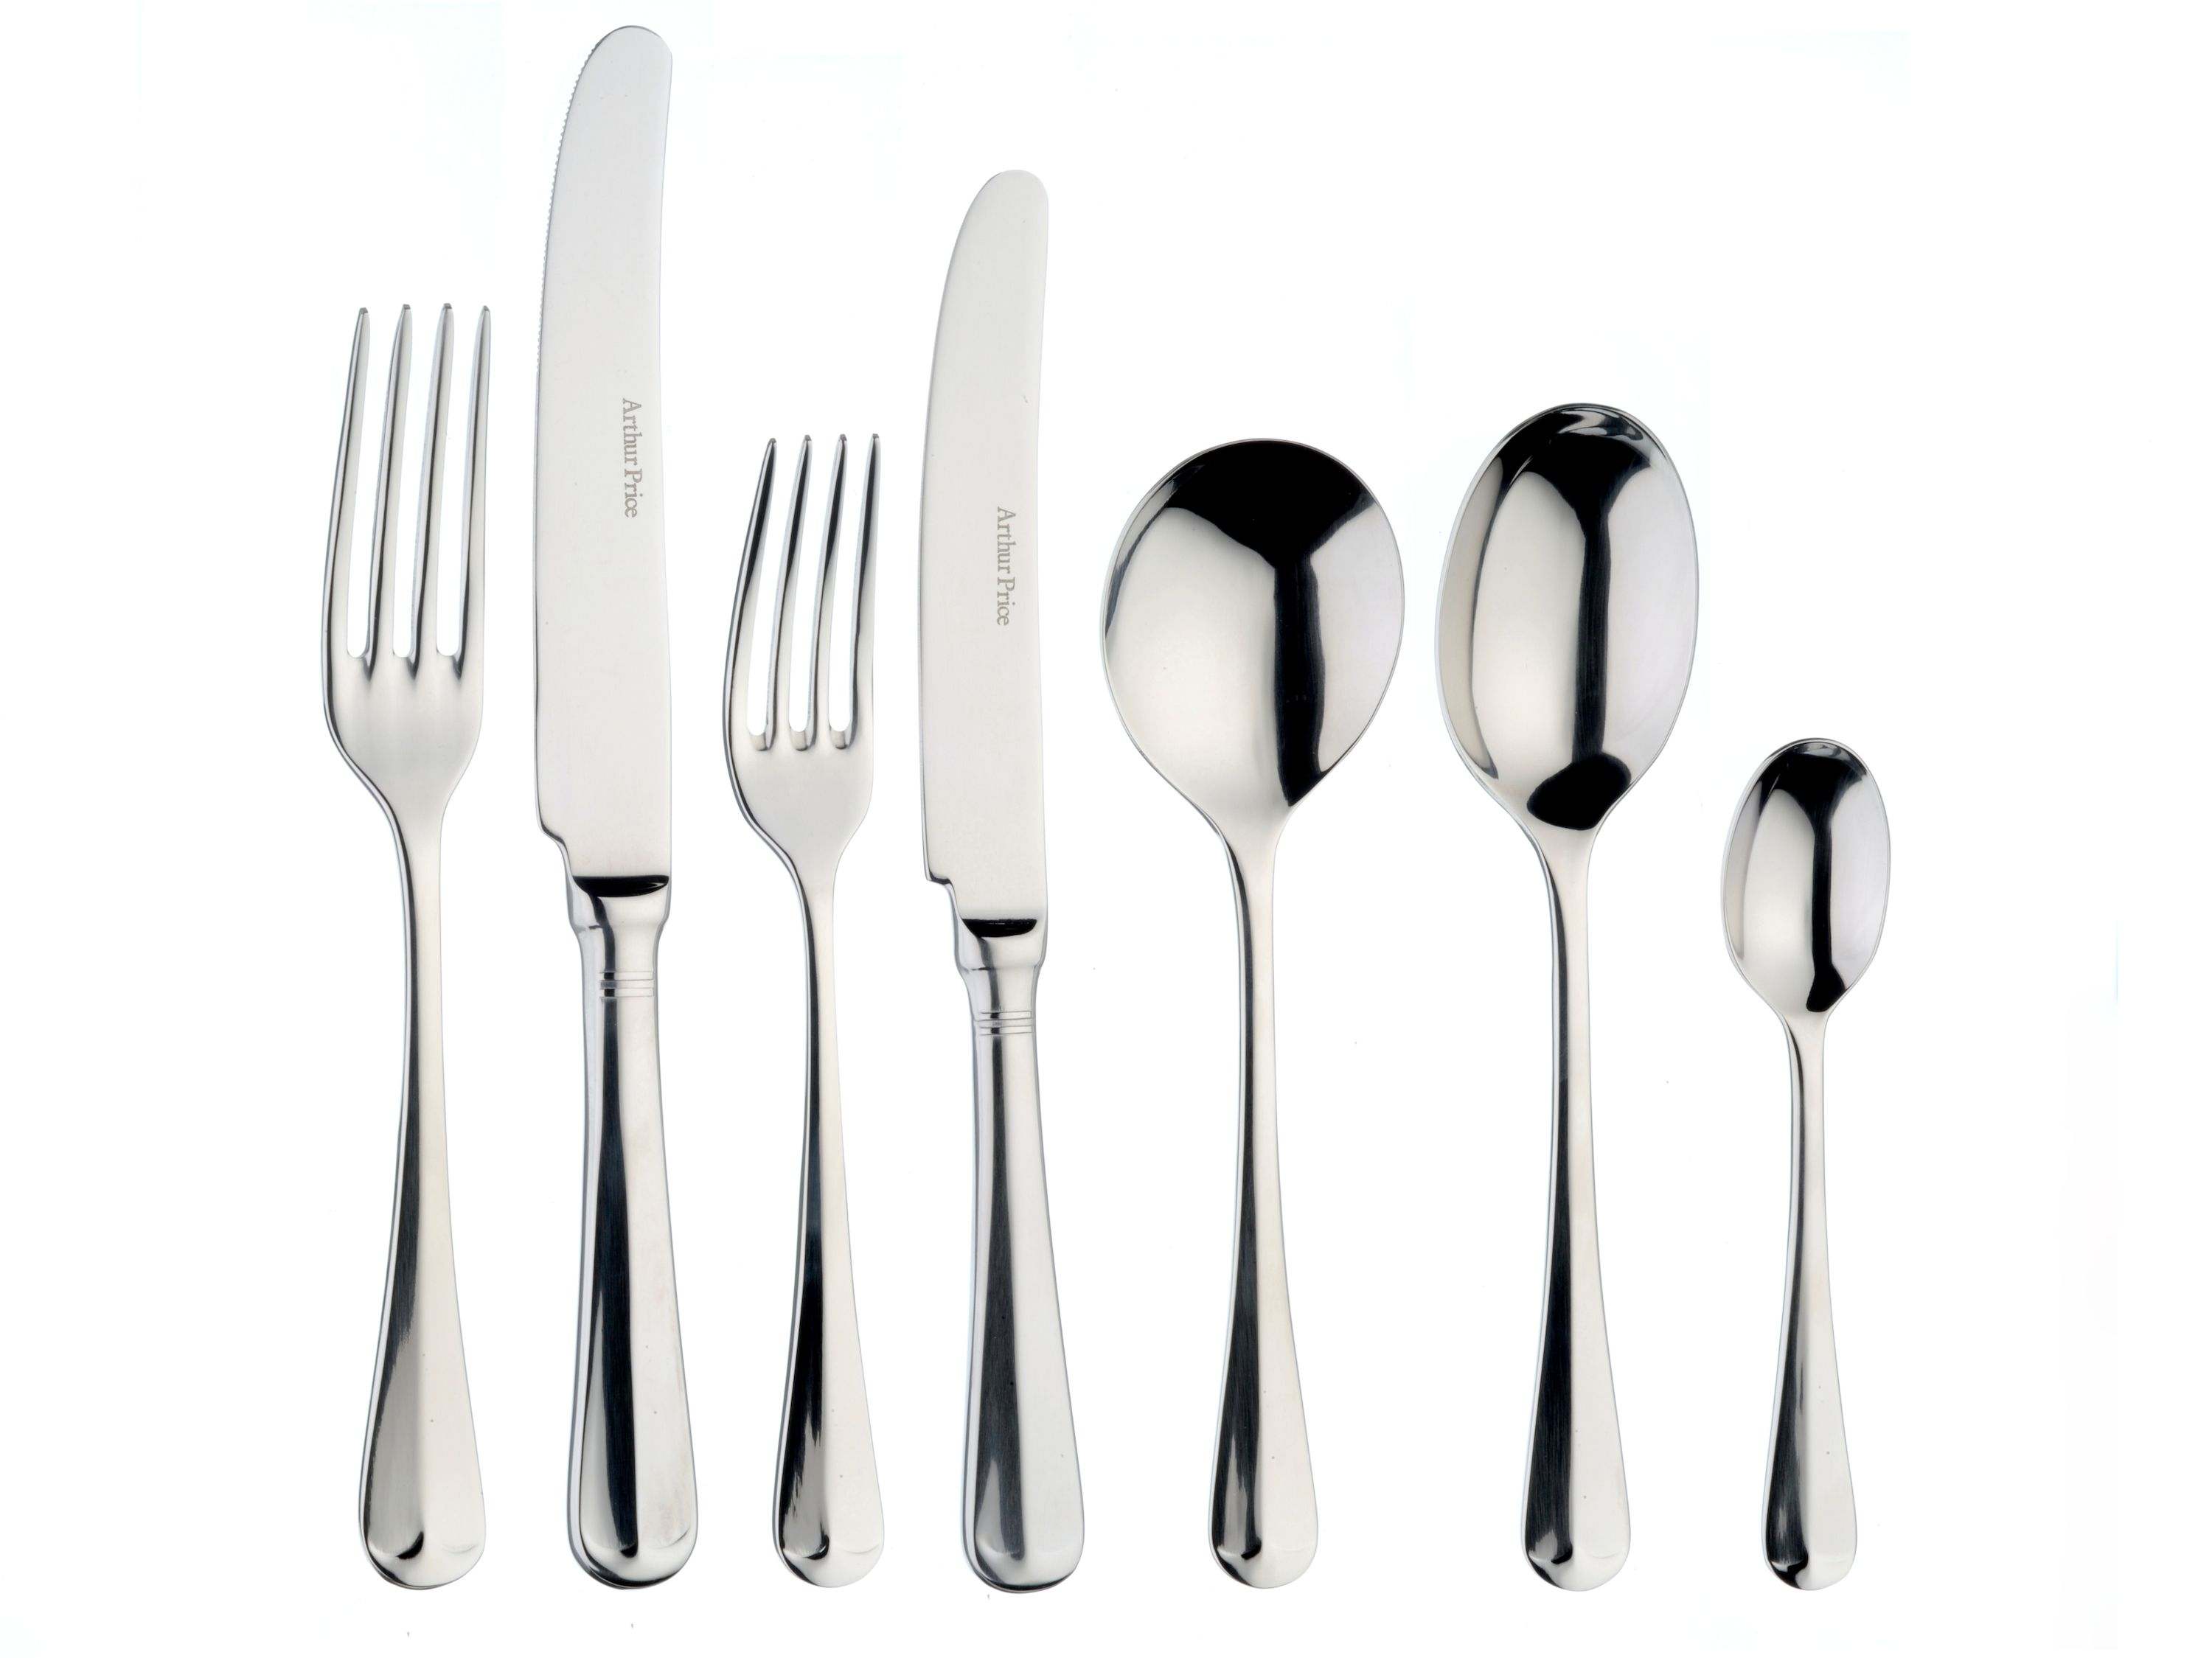 Arthur Price Rattail 44pce stainless steel cutlery set for 6